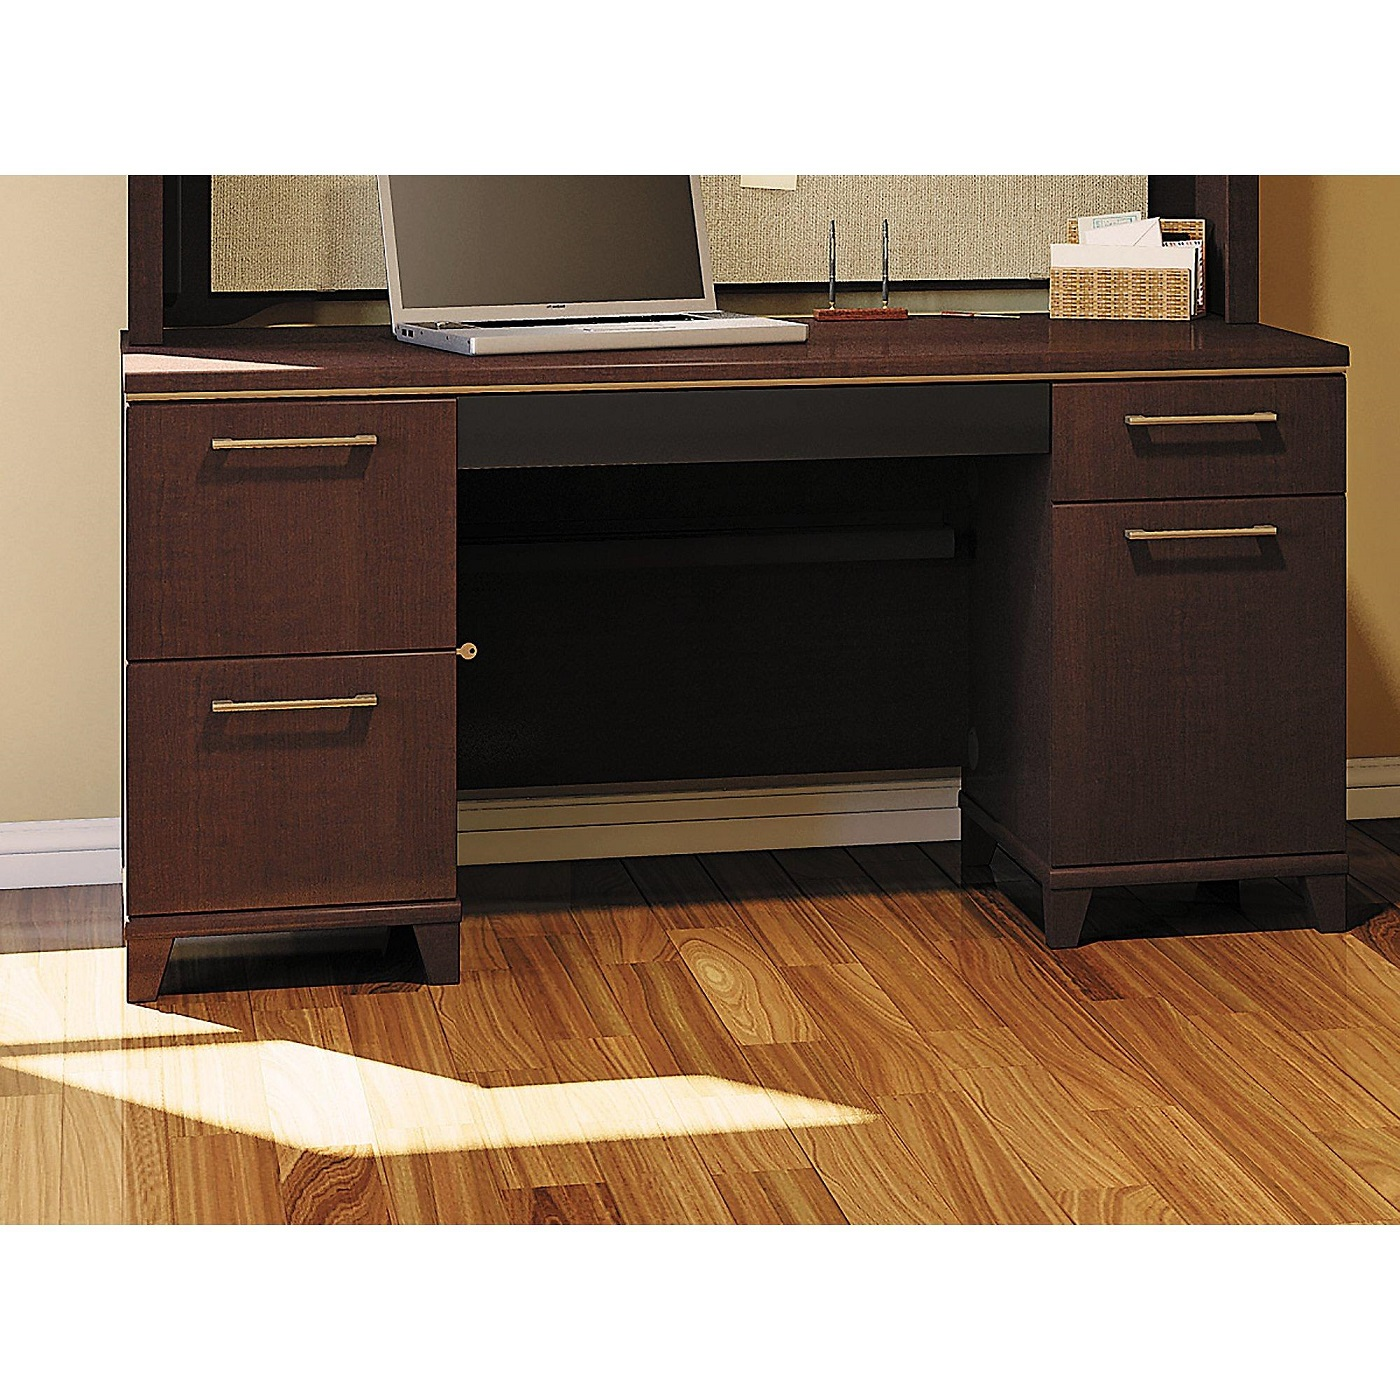 BUSH BUSINESS FURNITURE ENTERPRISE MOCHA CHERRY 60W OFFICE DESK WITH 2 PEDESTALS #EH-2960MC-03K: